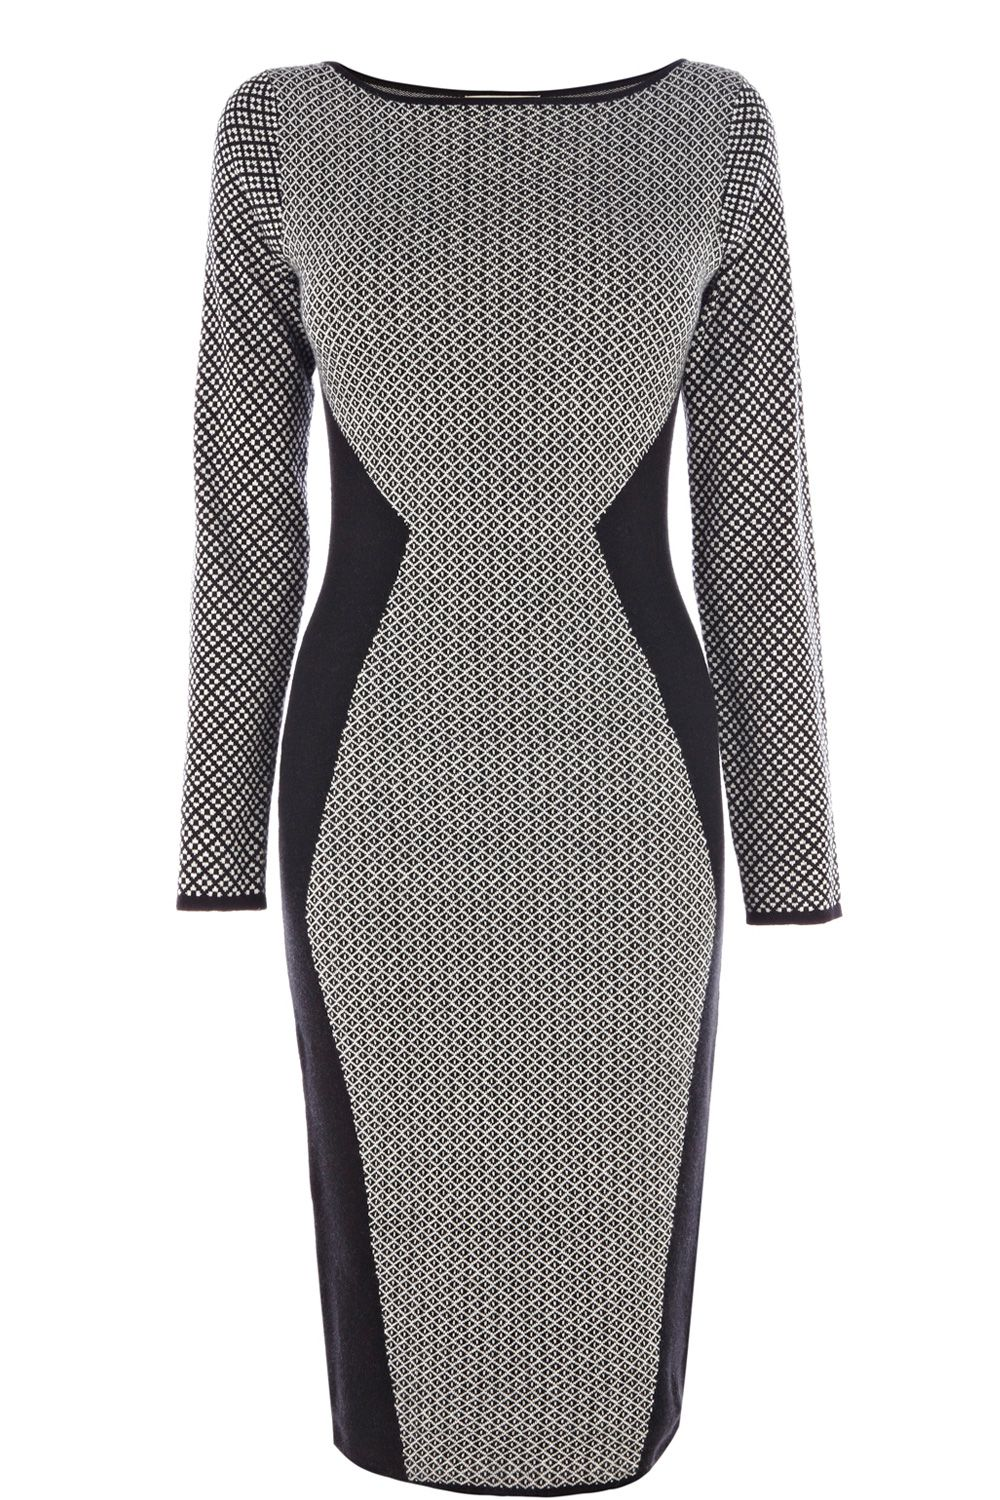 Diamond jaquard bodycon dress